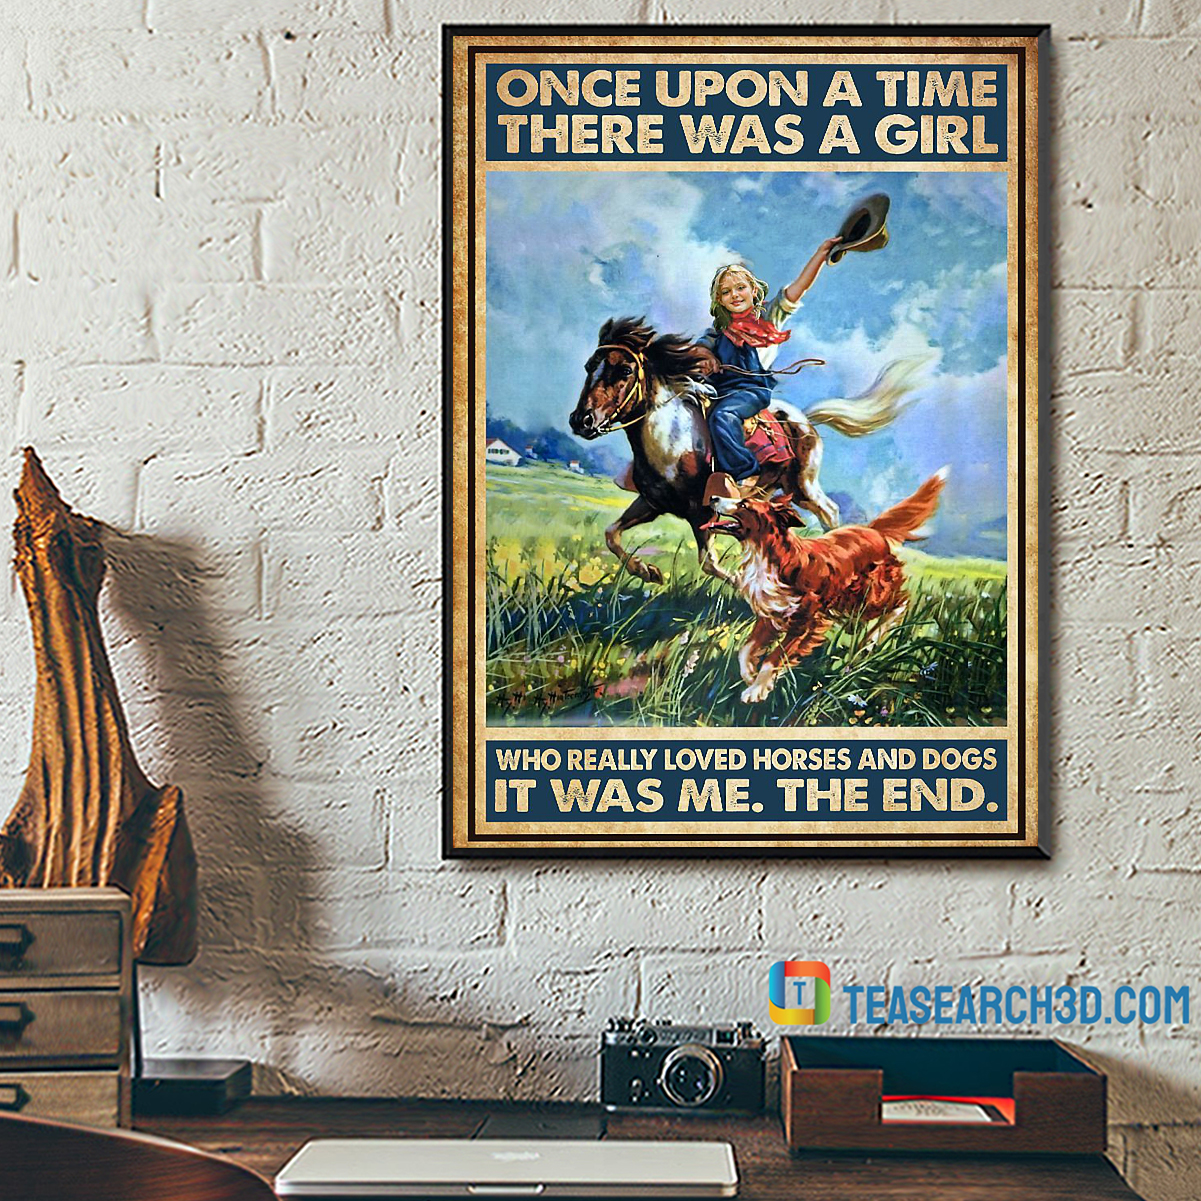 Cowgirl once upon a time there was a girl who really loved horses and dogs poster